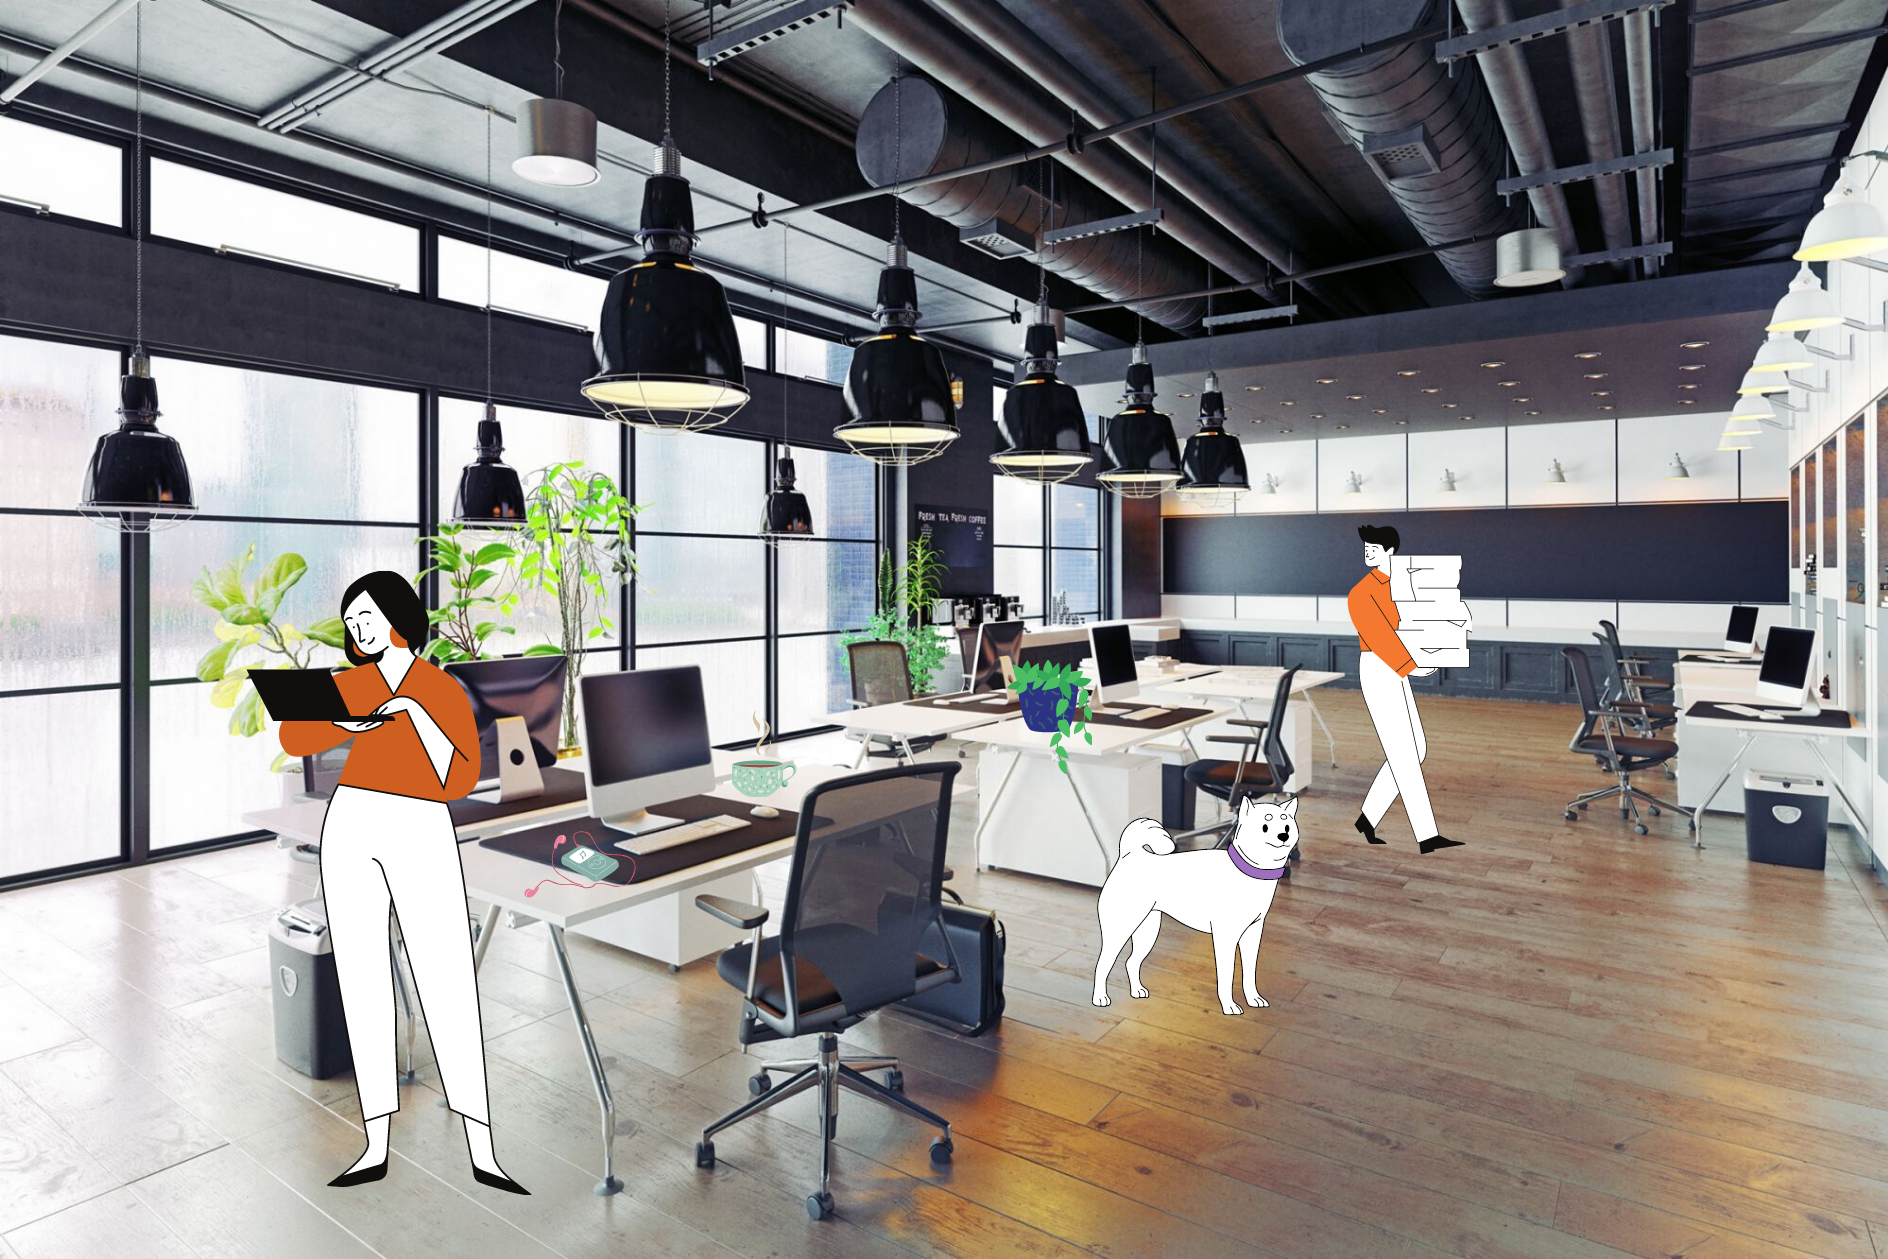 Why Rent a Temporary Office Space? Here's Why It's a Good Option